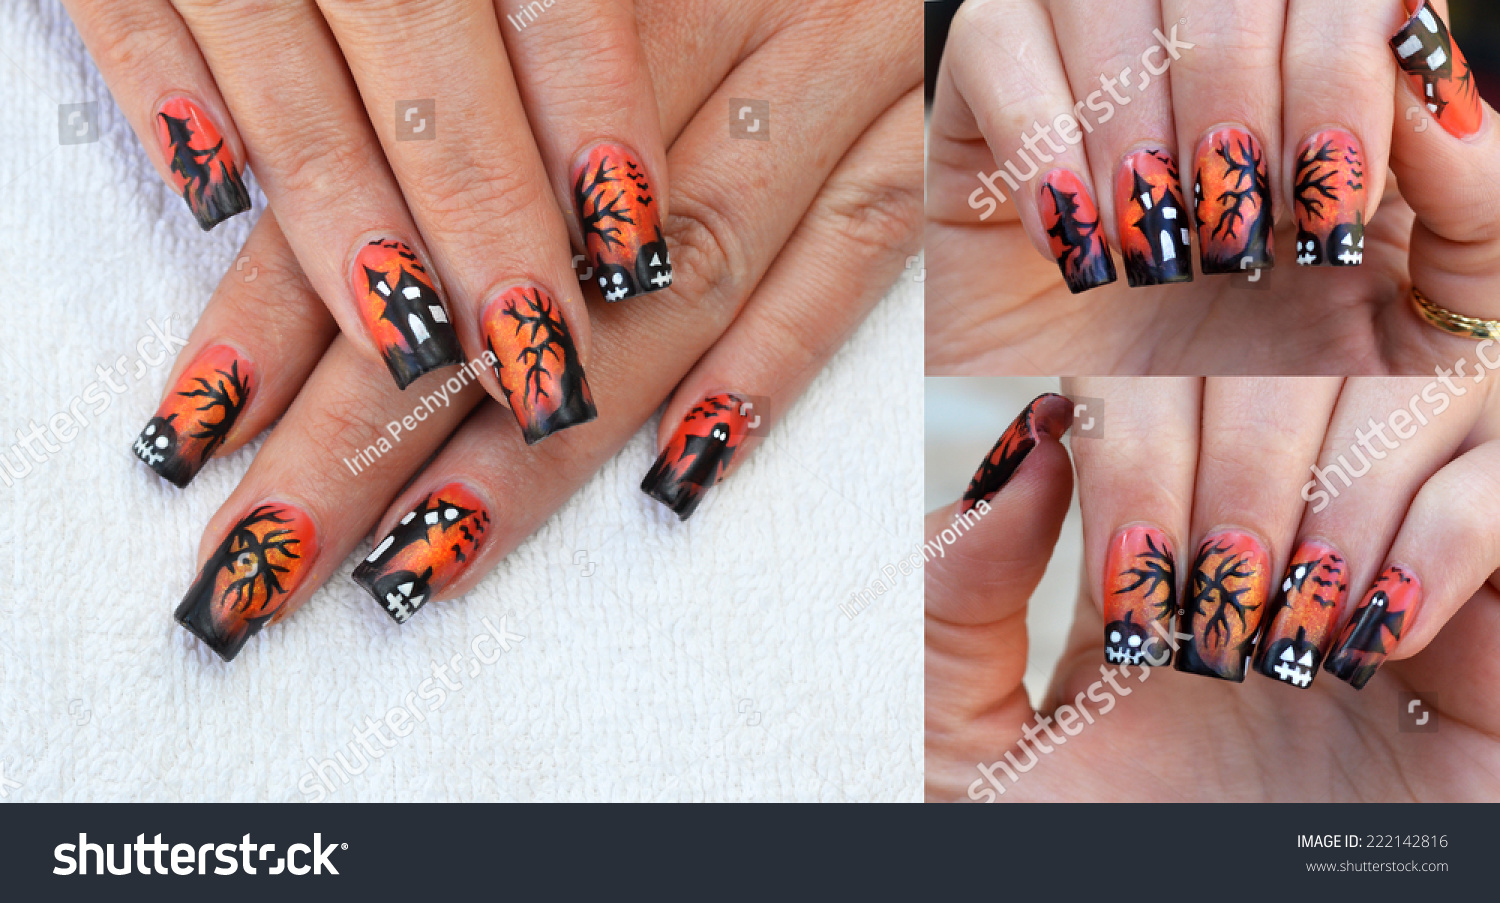 Amazing Free Hand Painted Halloween Nail Stock Photo (Royalty Free ...